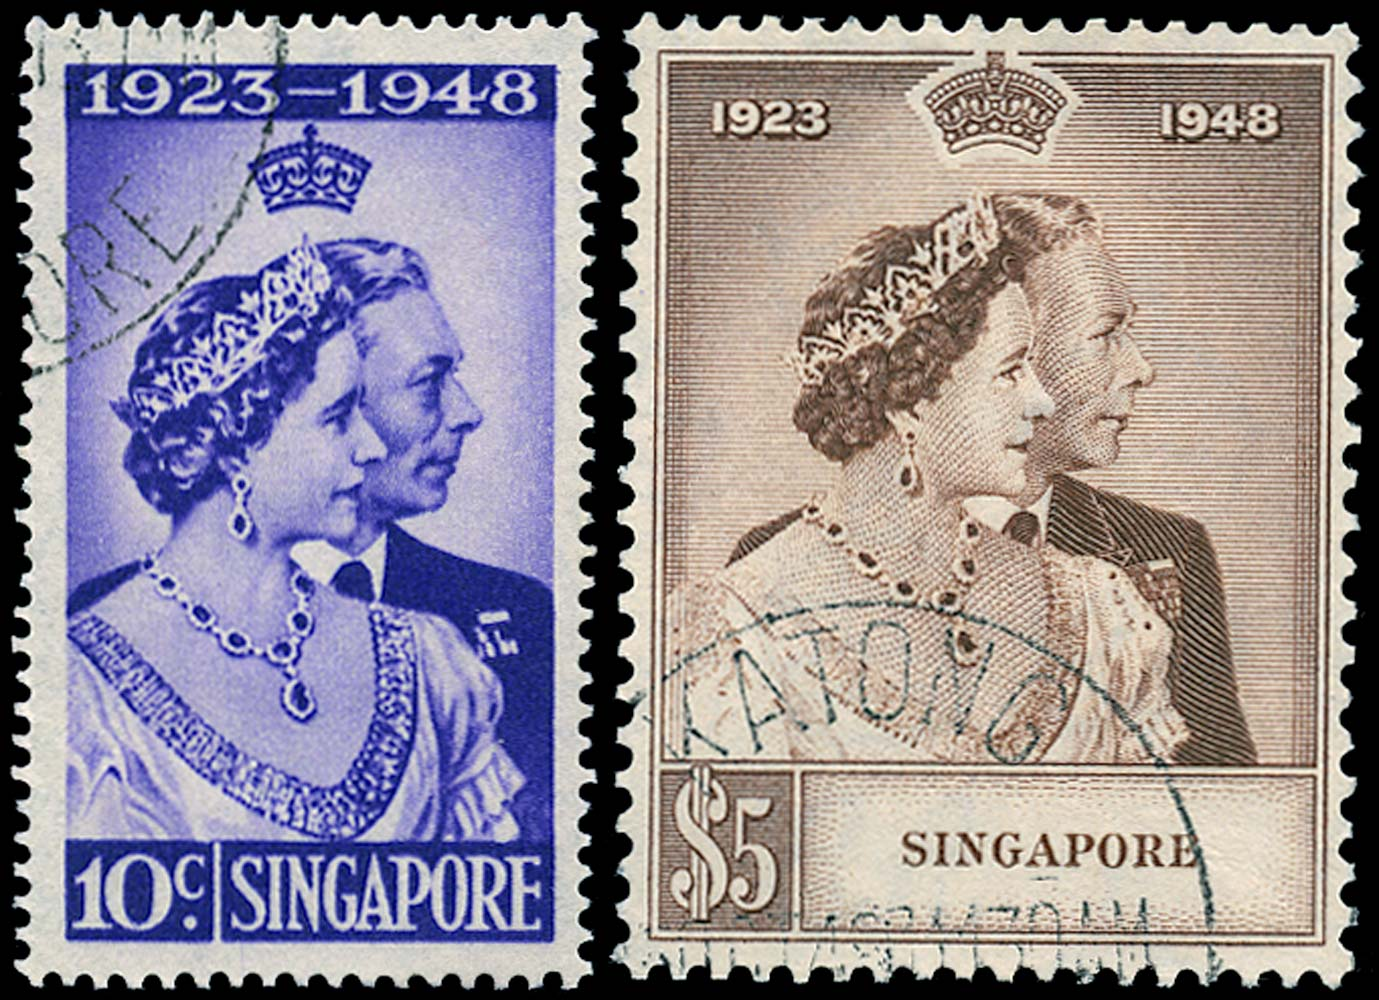 SINGAPORE 1948  SG31/2 Used Royal Silver Wedding 10c and $5